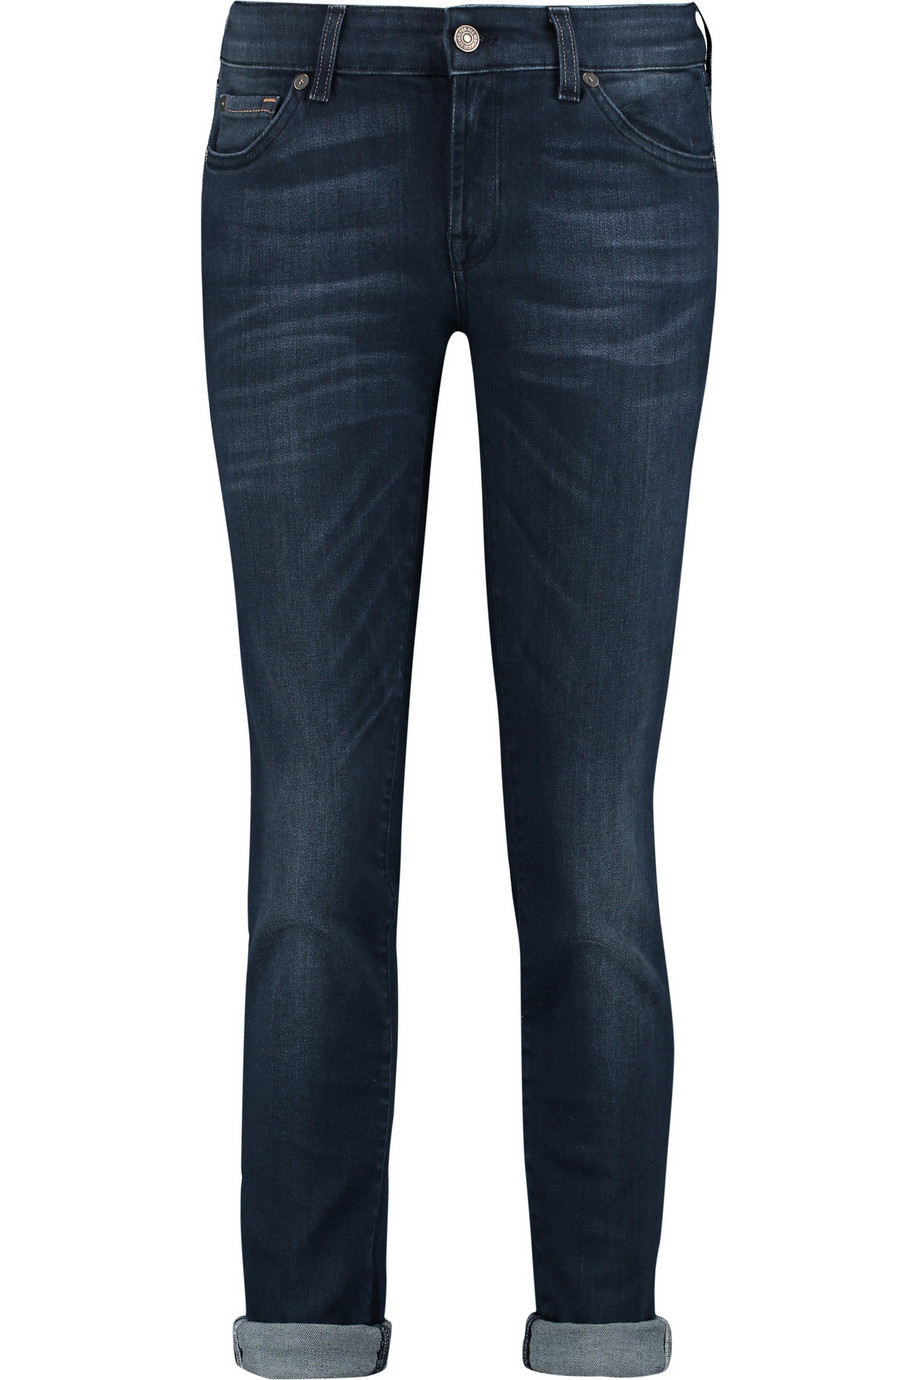 Cristen Mid Rise Skinny Jeans Dark Denim - style: skinny leg; pattern: plain; pocket detail: traditional 5 pocket; waist: mid/regular rise; predominant colour: navy; occasions: casual, creative work; length: ankle length; fibres: cotton - stretch; jeans detail: whiskering; jeans & bottoms detail: turn ups; texture group: denim; pattern type: fabric; season: a/w 2015; wardrobe: basic